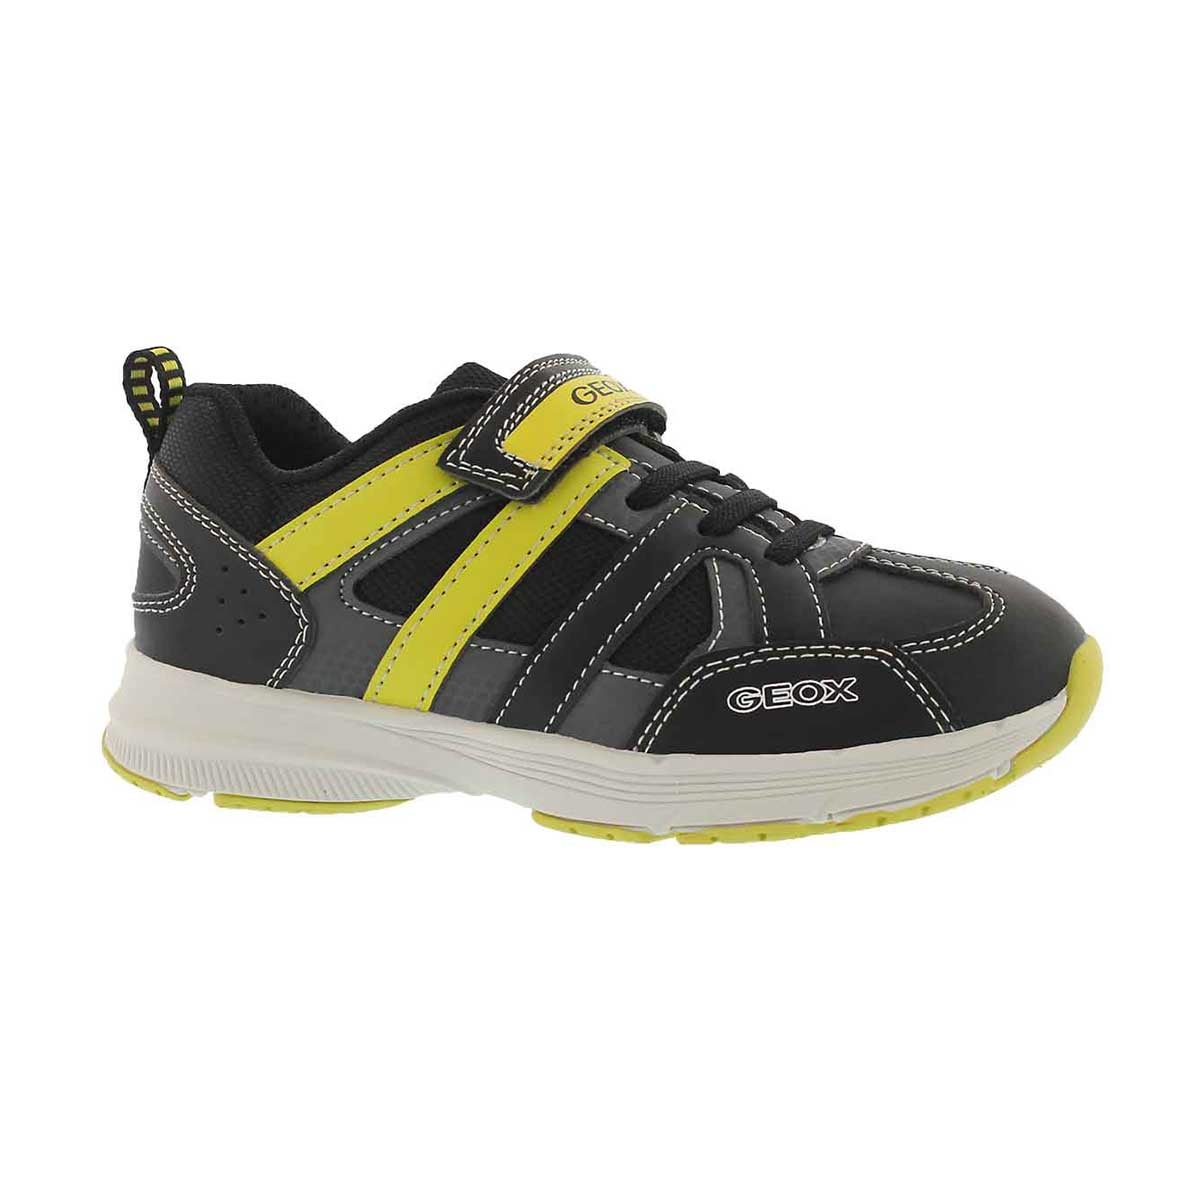 Boys' TOP FLY black/lime sneakers